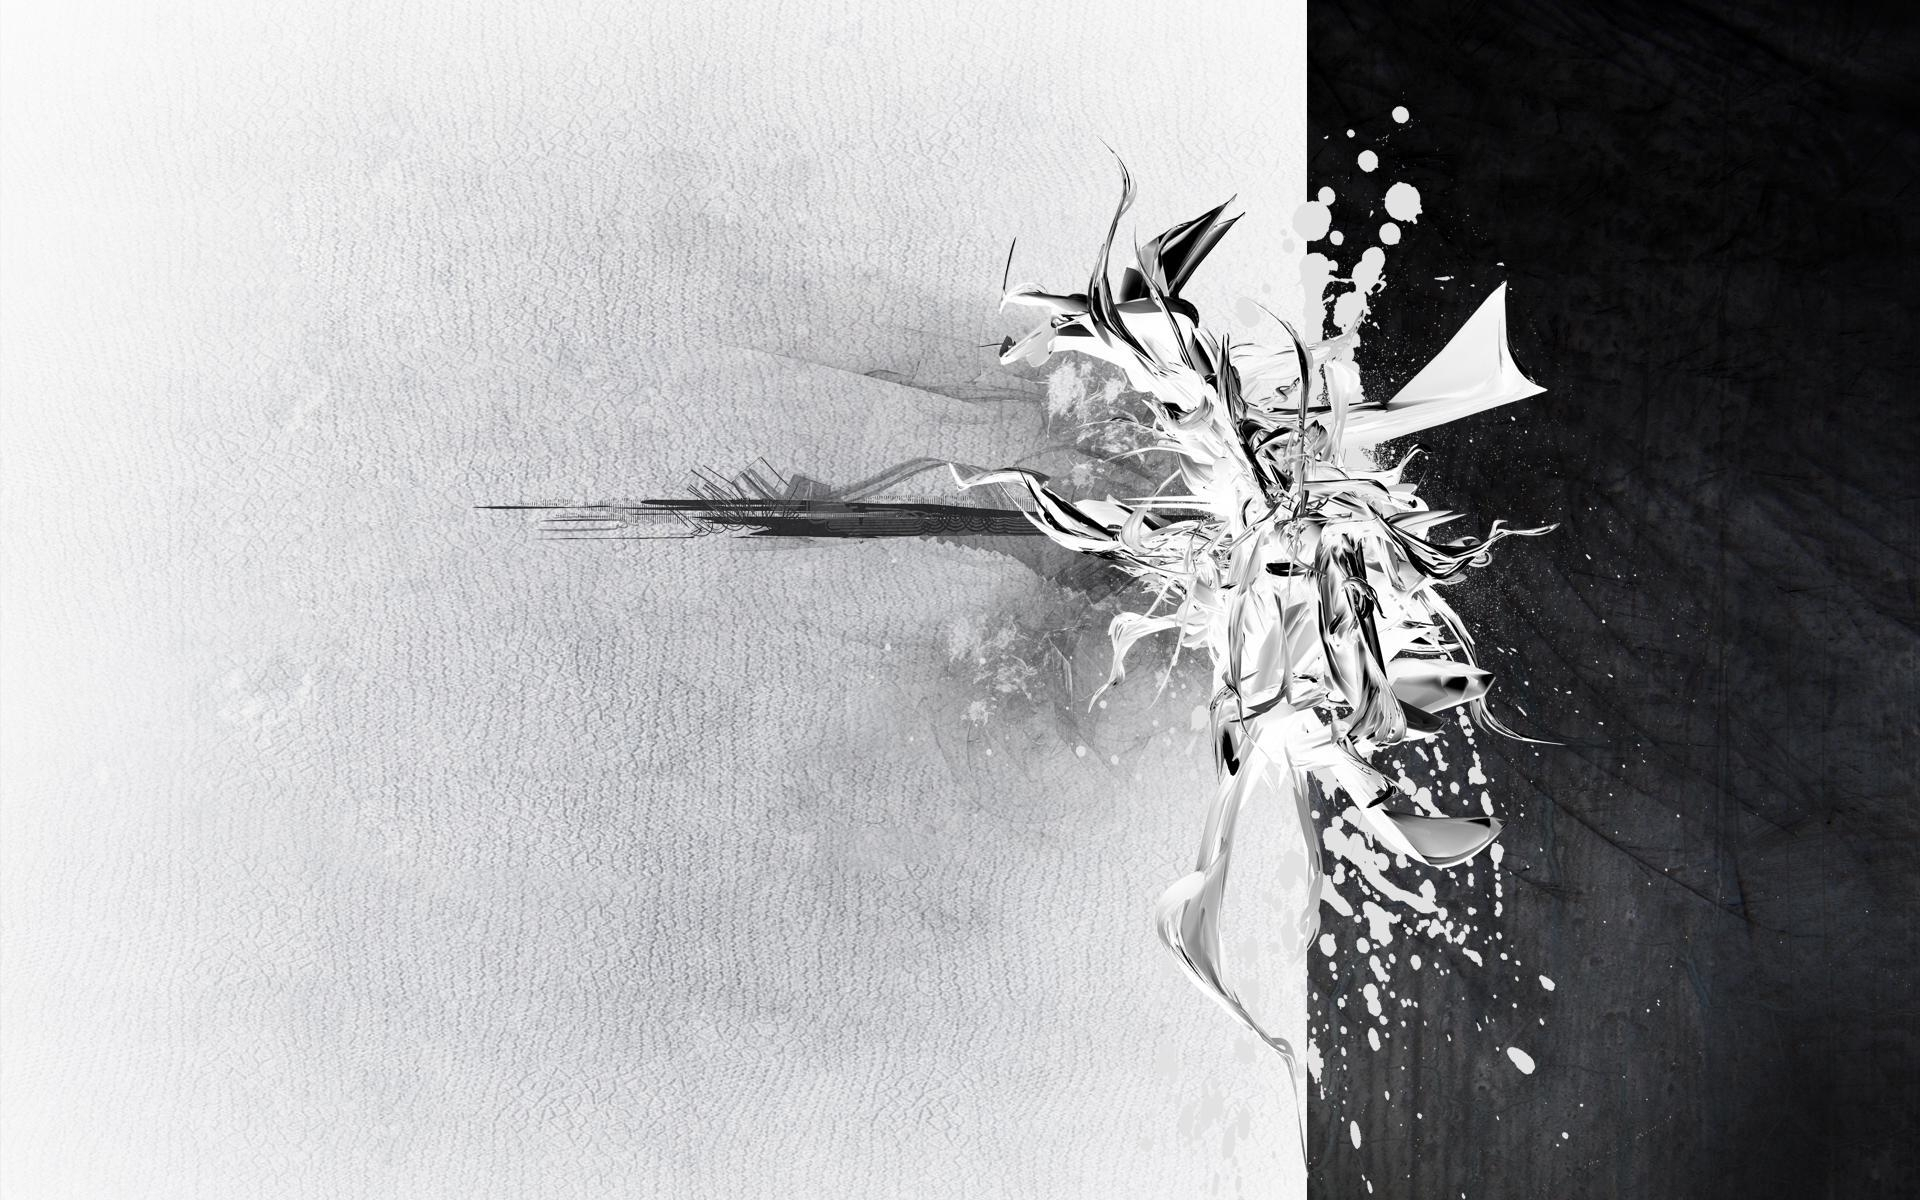 download the white and black abstract wallpaper, white and black